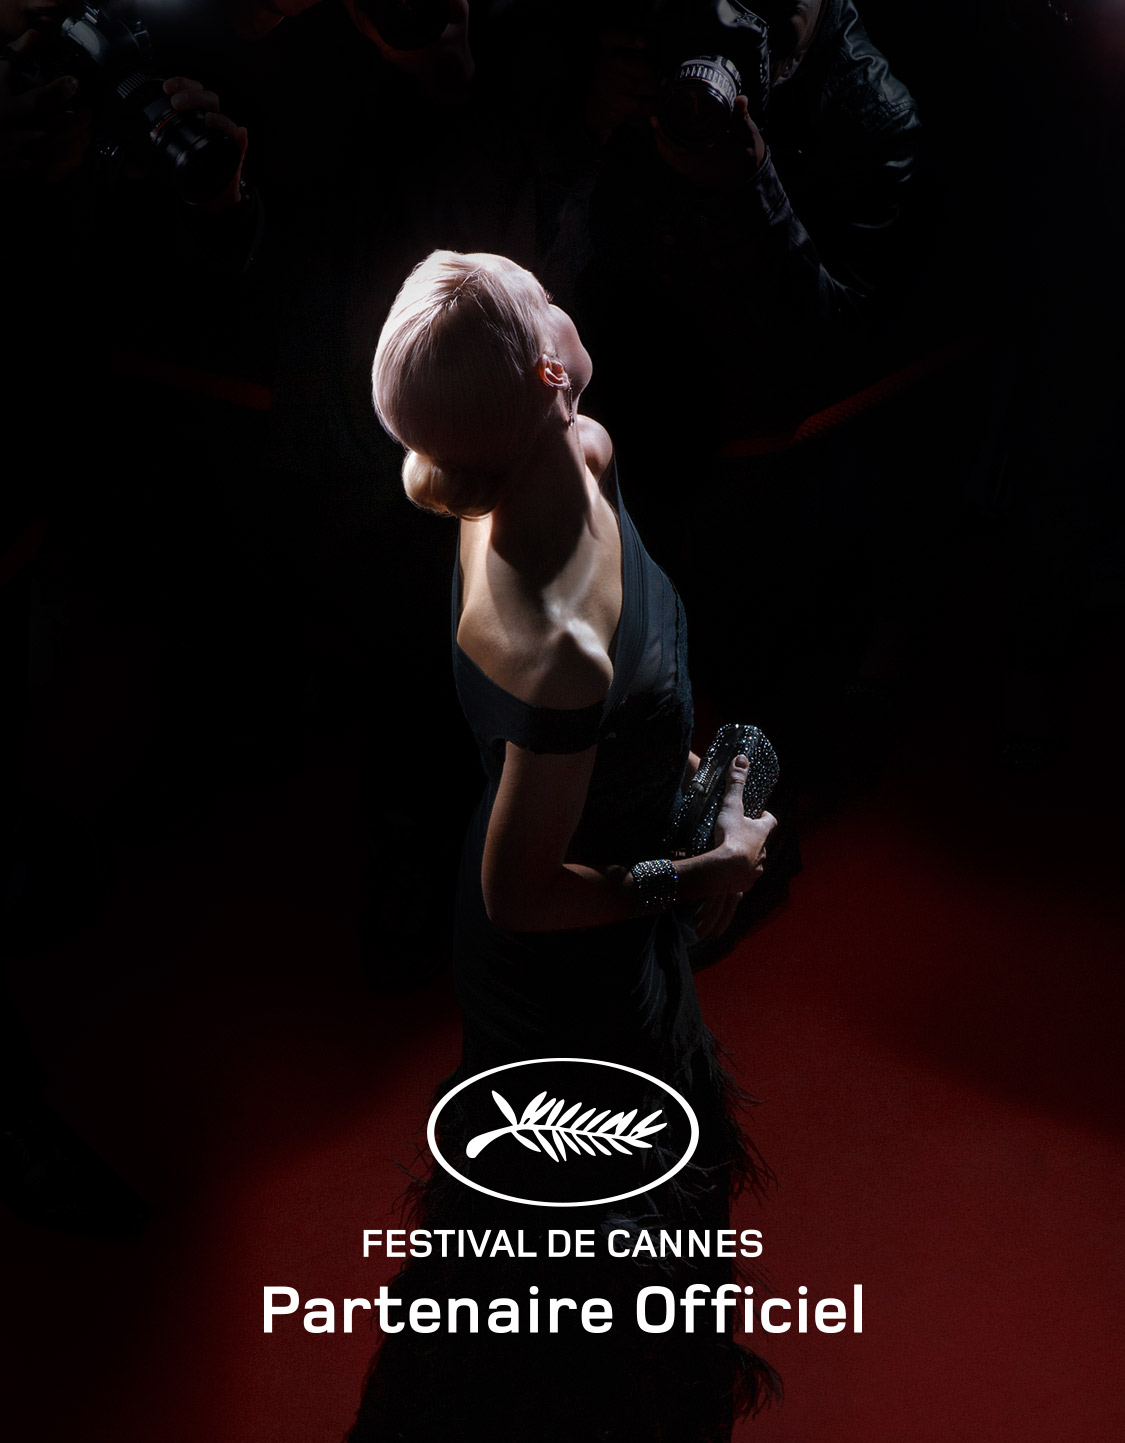 Actress smiling at photographs during Cannes Film Festival